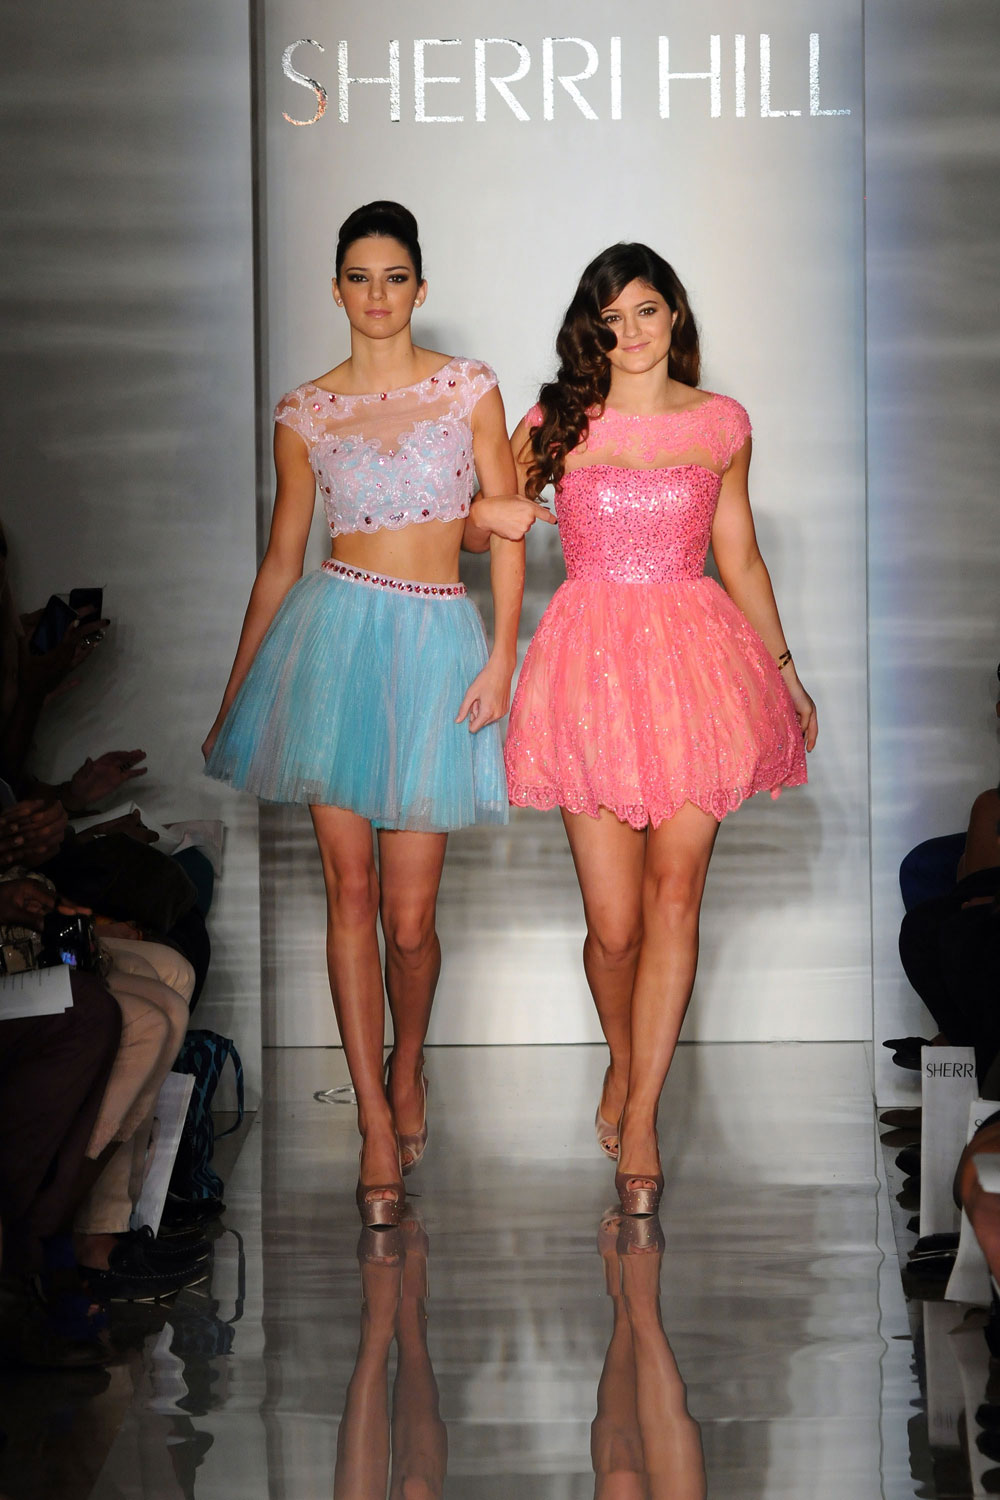 Kylie, Kendall Jenner (15, 16) stop attending high school to focus on ...